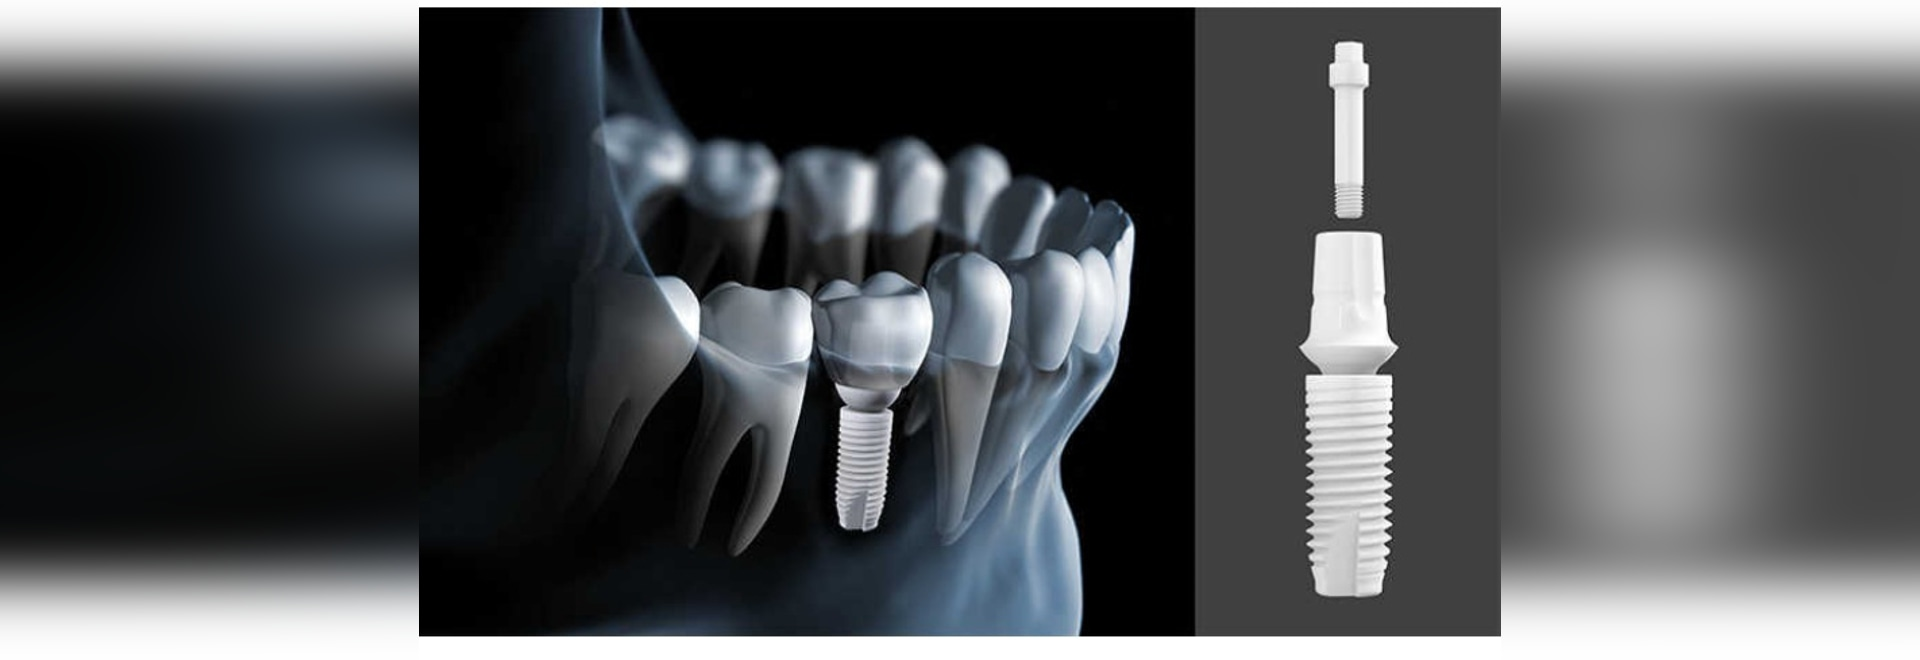 Z-SYSTEM's new two-piece ceramic implant features a ceramic connection screw, making it the first two-piece, screw-retained dental implant to be completely metal- and plastic-free. (Image: Z-SYSTEMS)